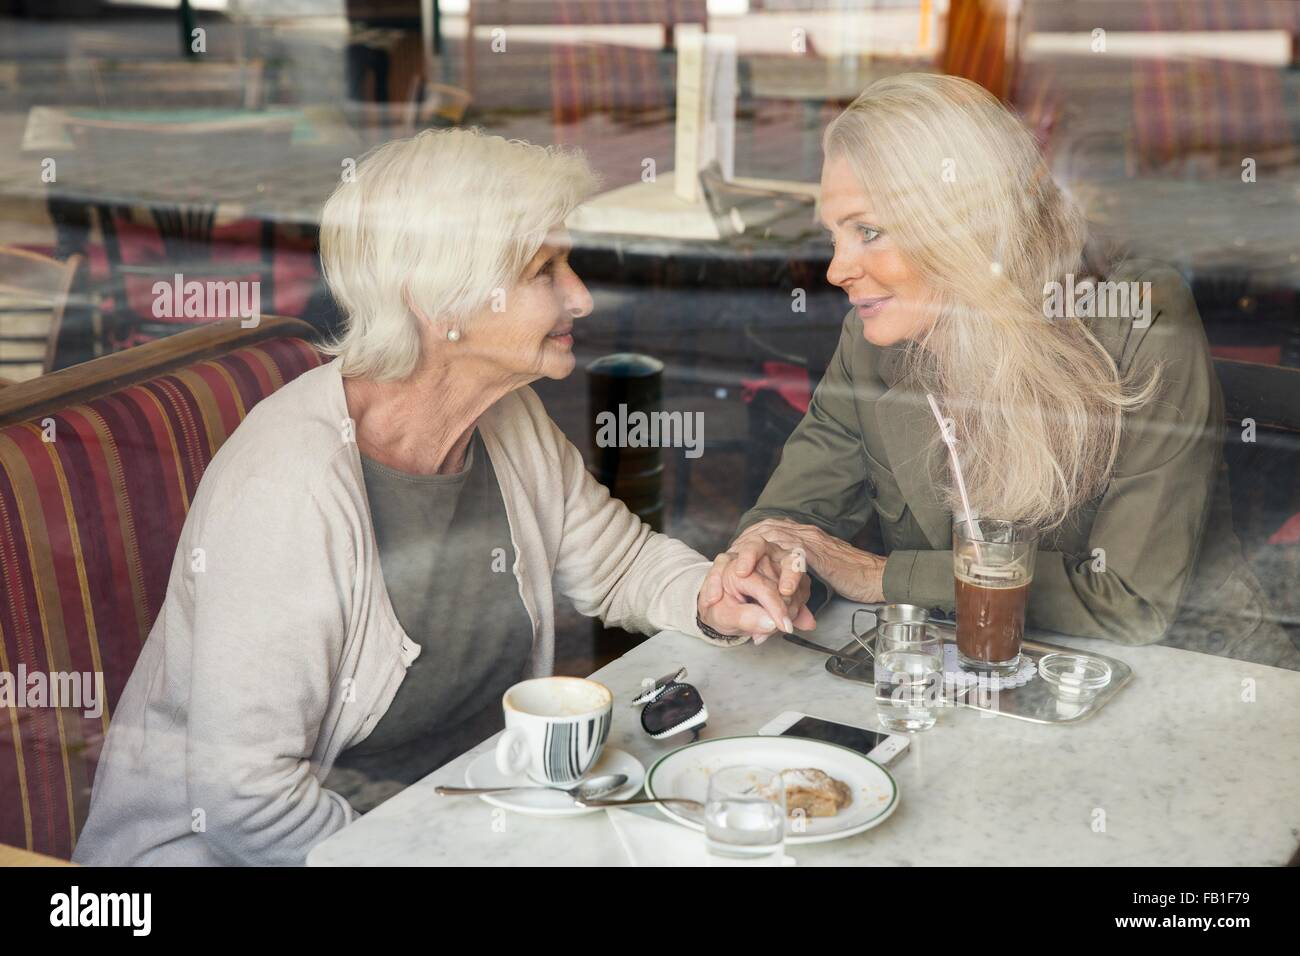 Mother and daughter sitting together in cafe, holding hands, seen through cafe window - Stock Image